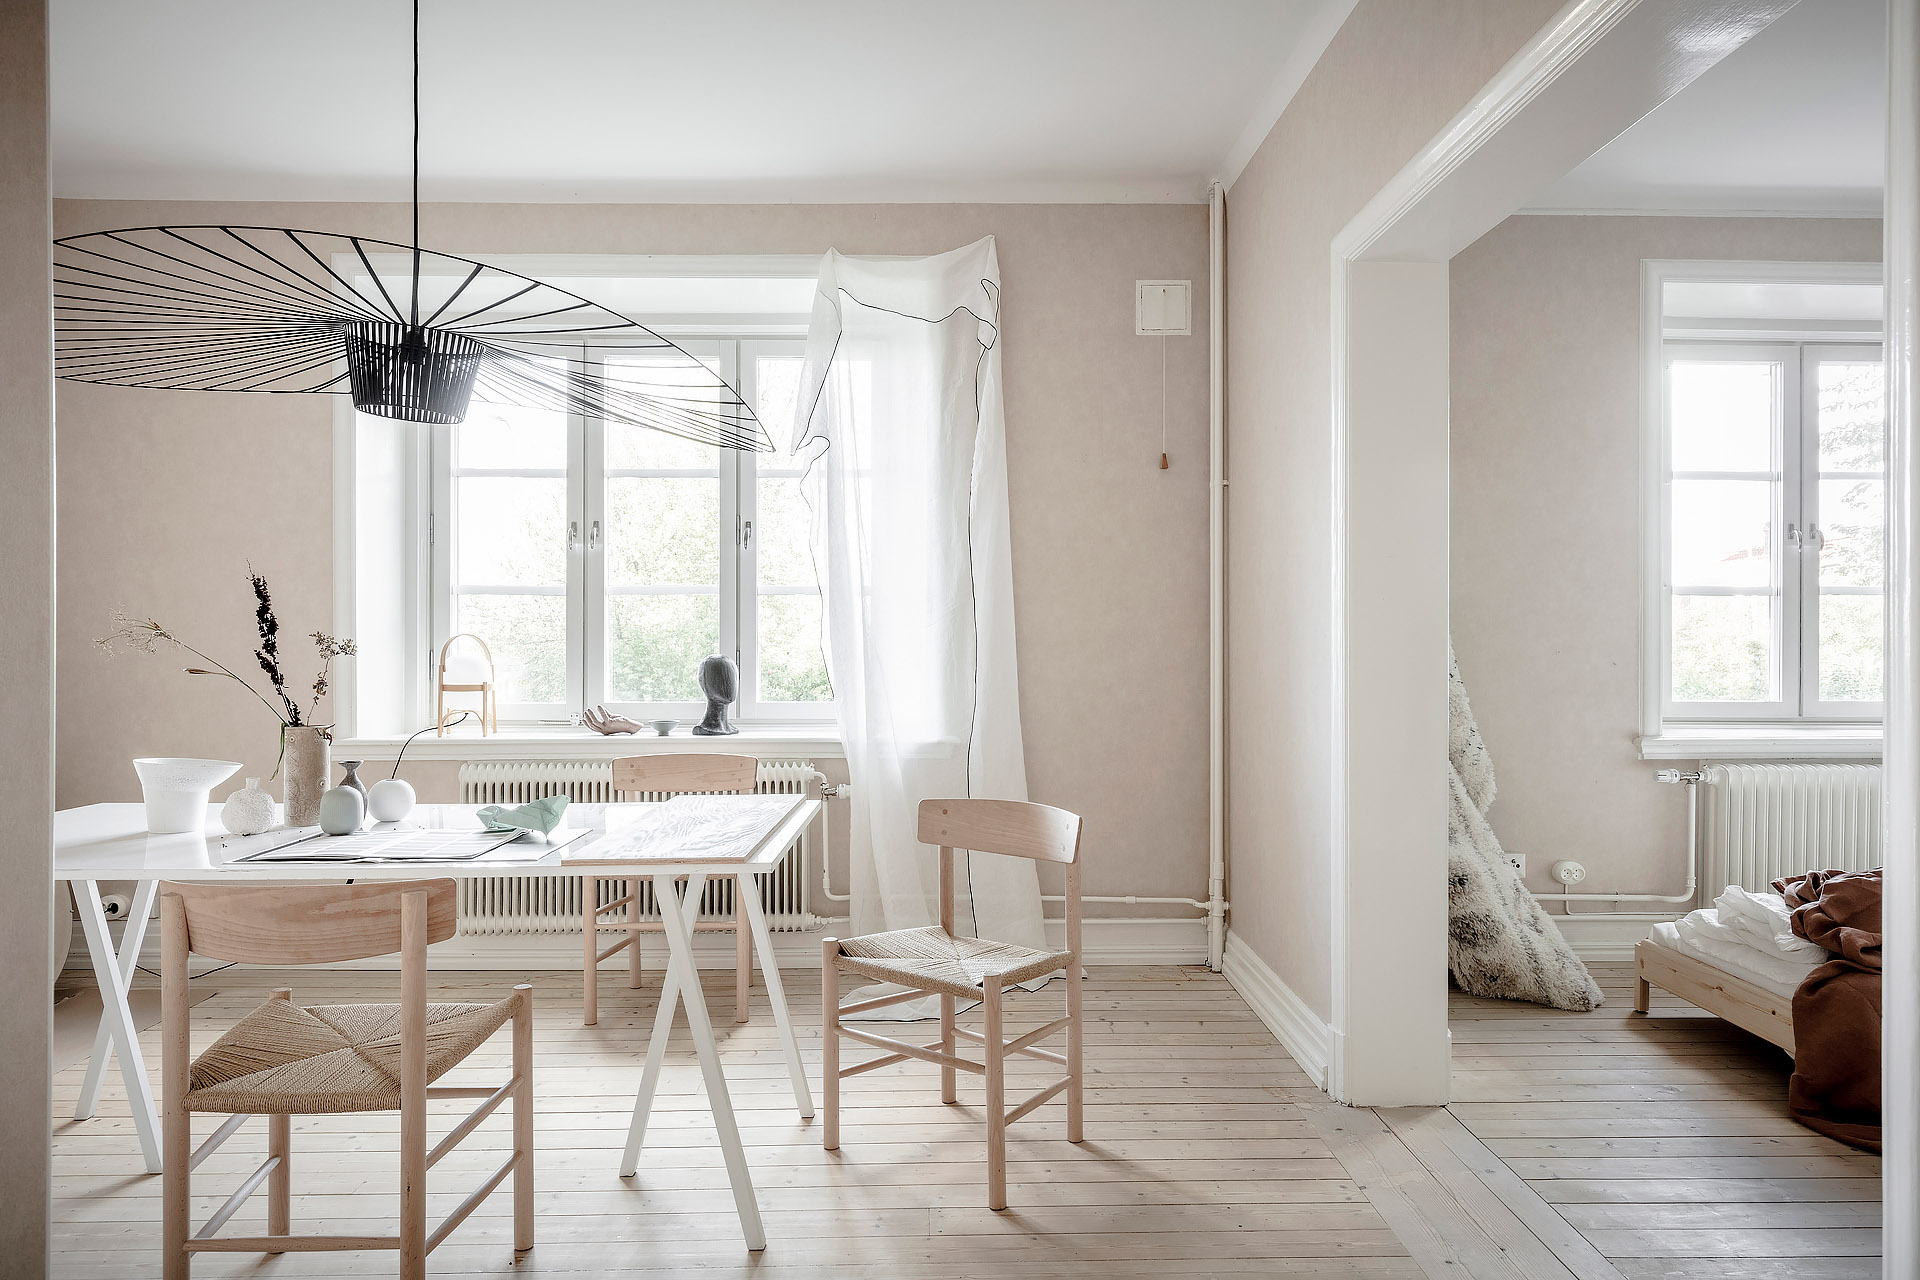 This Home Staging Project Done By Talented Stylist Emma Fisher Doesnu0027t Look  Like The Usual Home For Sale, Yet Is Styled In A Very Minimal, Artistic Way.